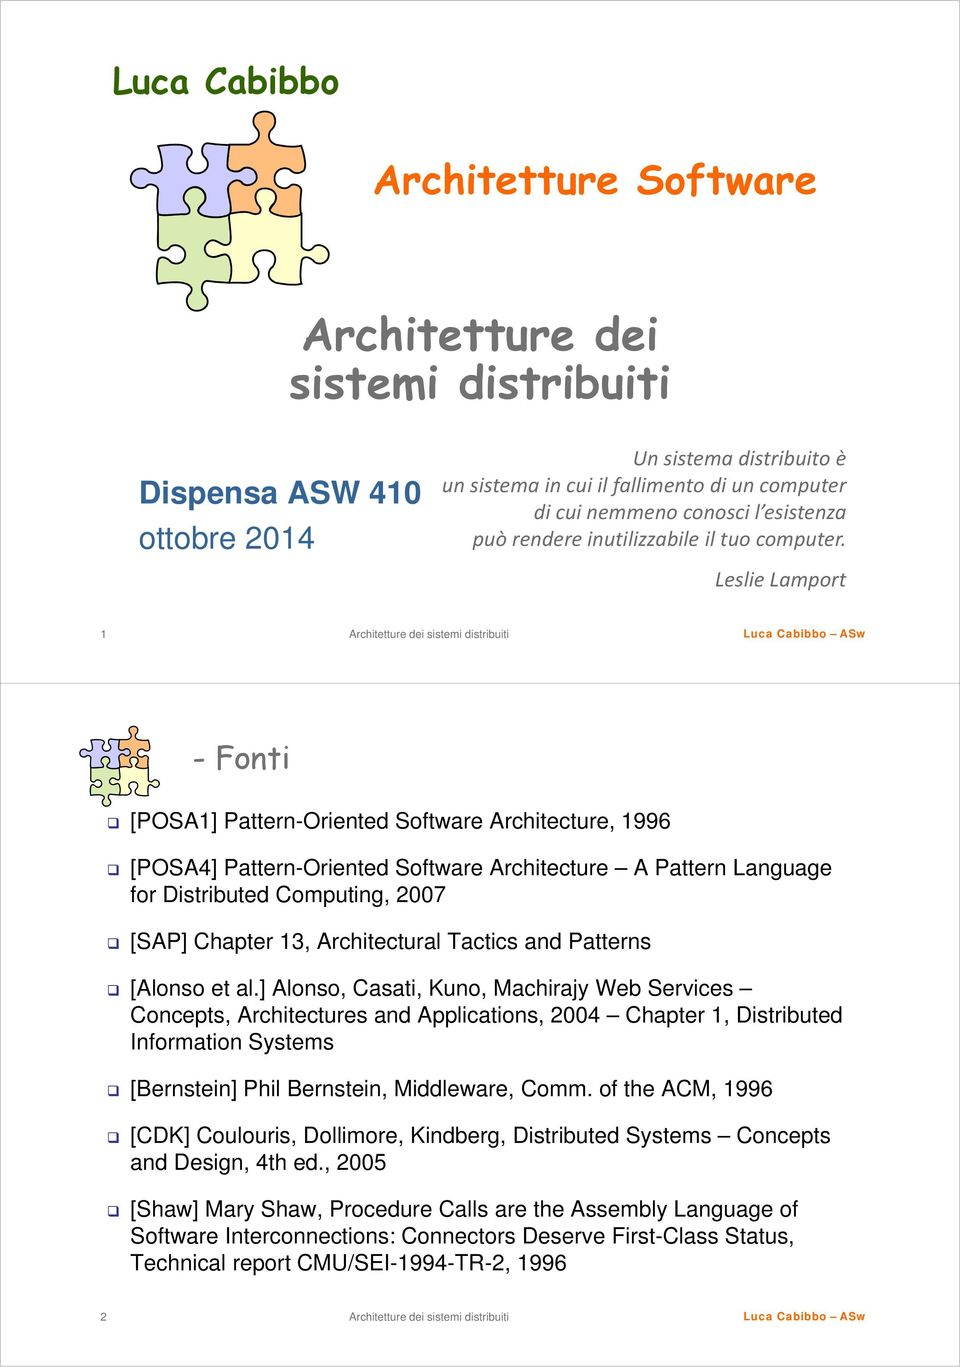 Leslie Lamport 1 -Fonti [POSA1] Pattern-Oriented Software Architecture, 1996 [POSA4] Pattern-Oriented Software Architecture A Pattern Language for Distributed Computing, 2007 [SAP] Chapter 13,